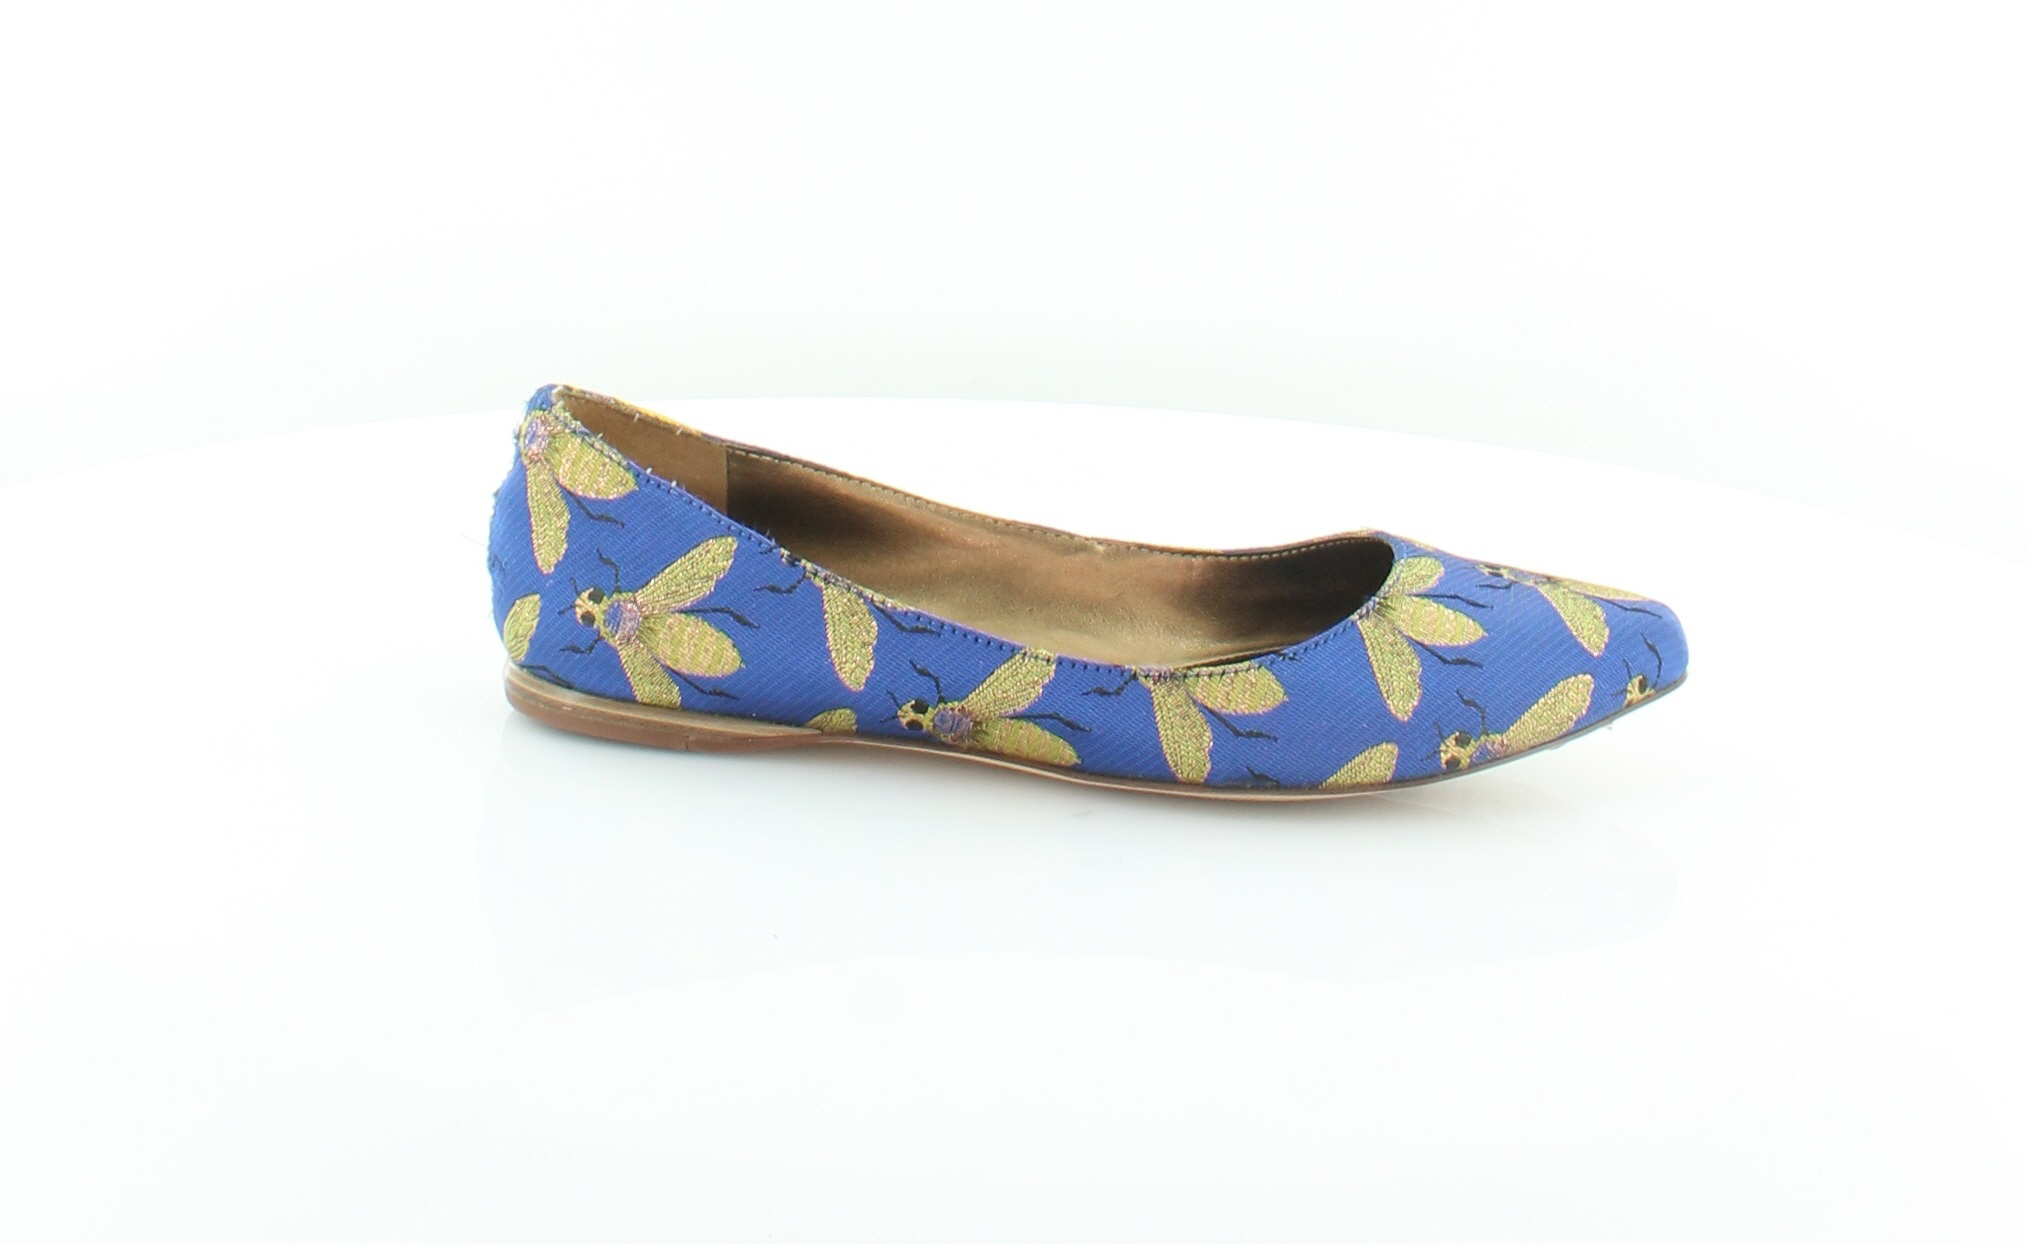 Nine West Speakup bluee Womens shoes Size 6 M Flats MSRP  69